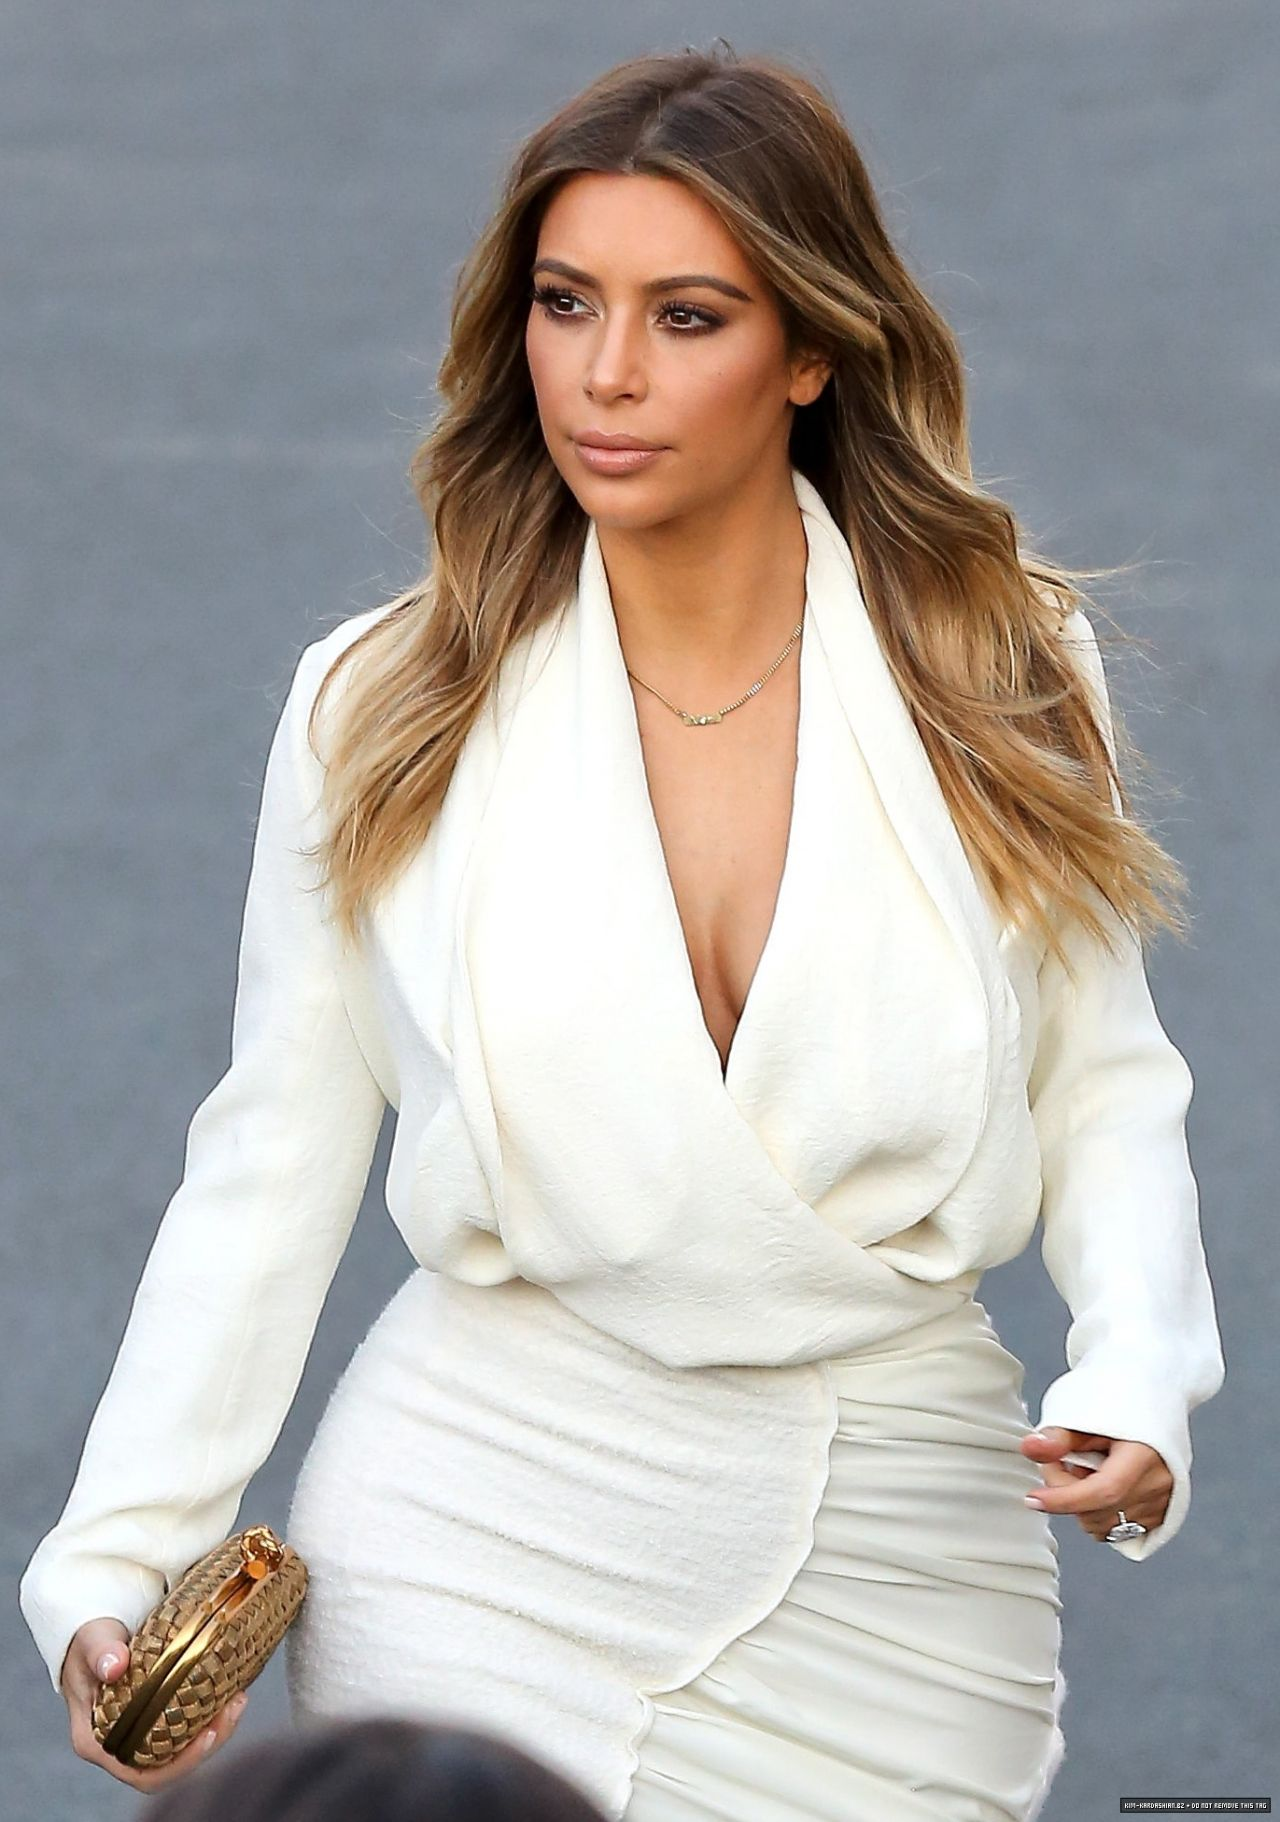 Kim Kardashian Style - Arriving to The Ellen DeGeneres Show in Burbank, January 2014